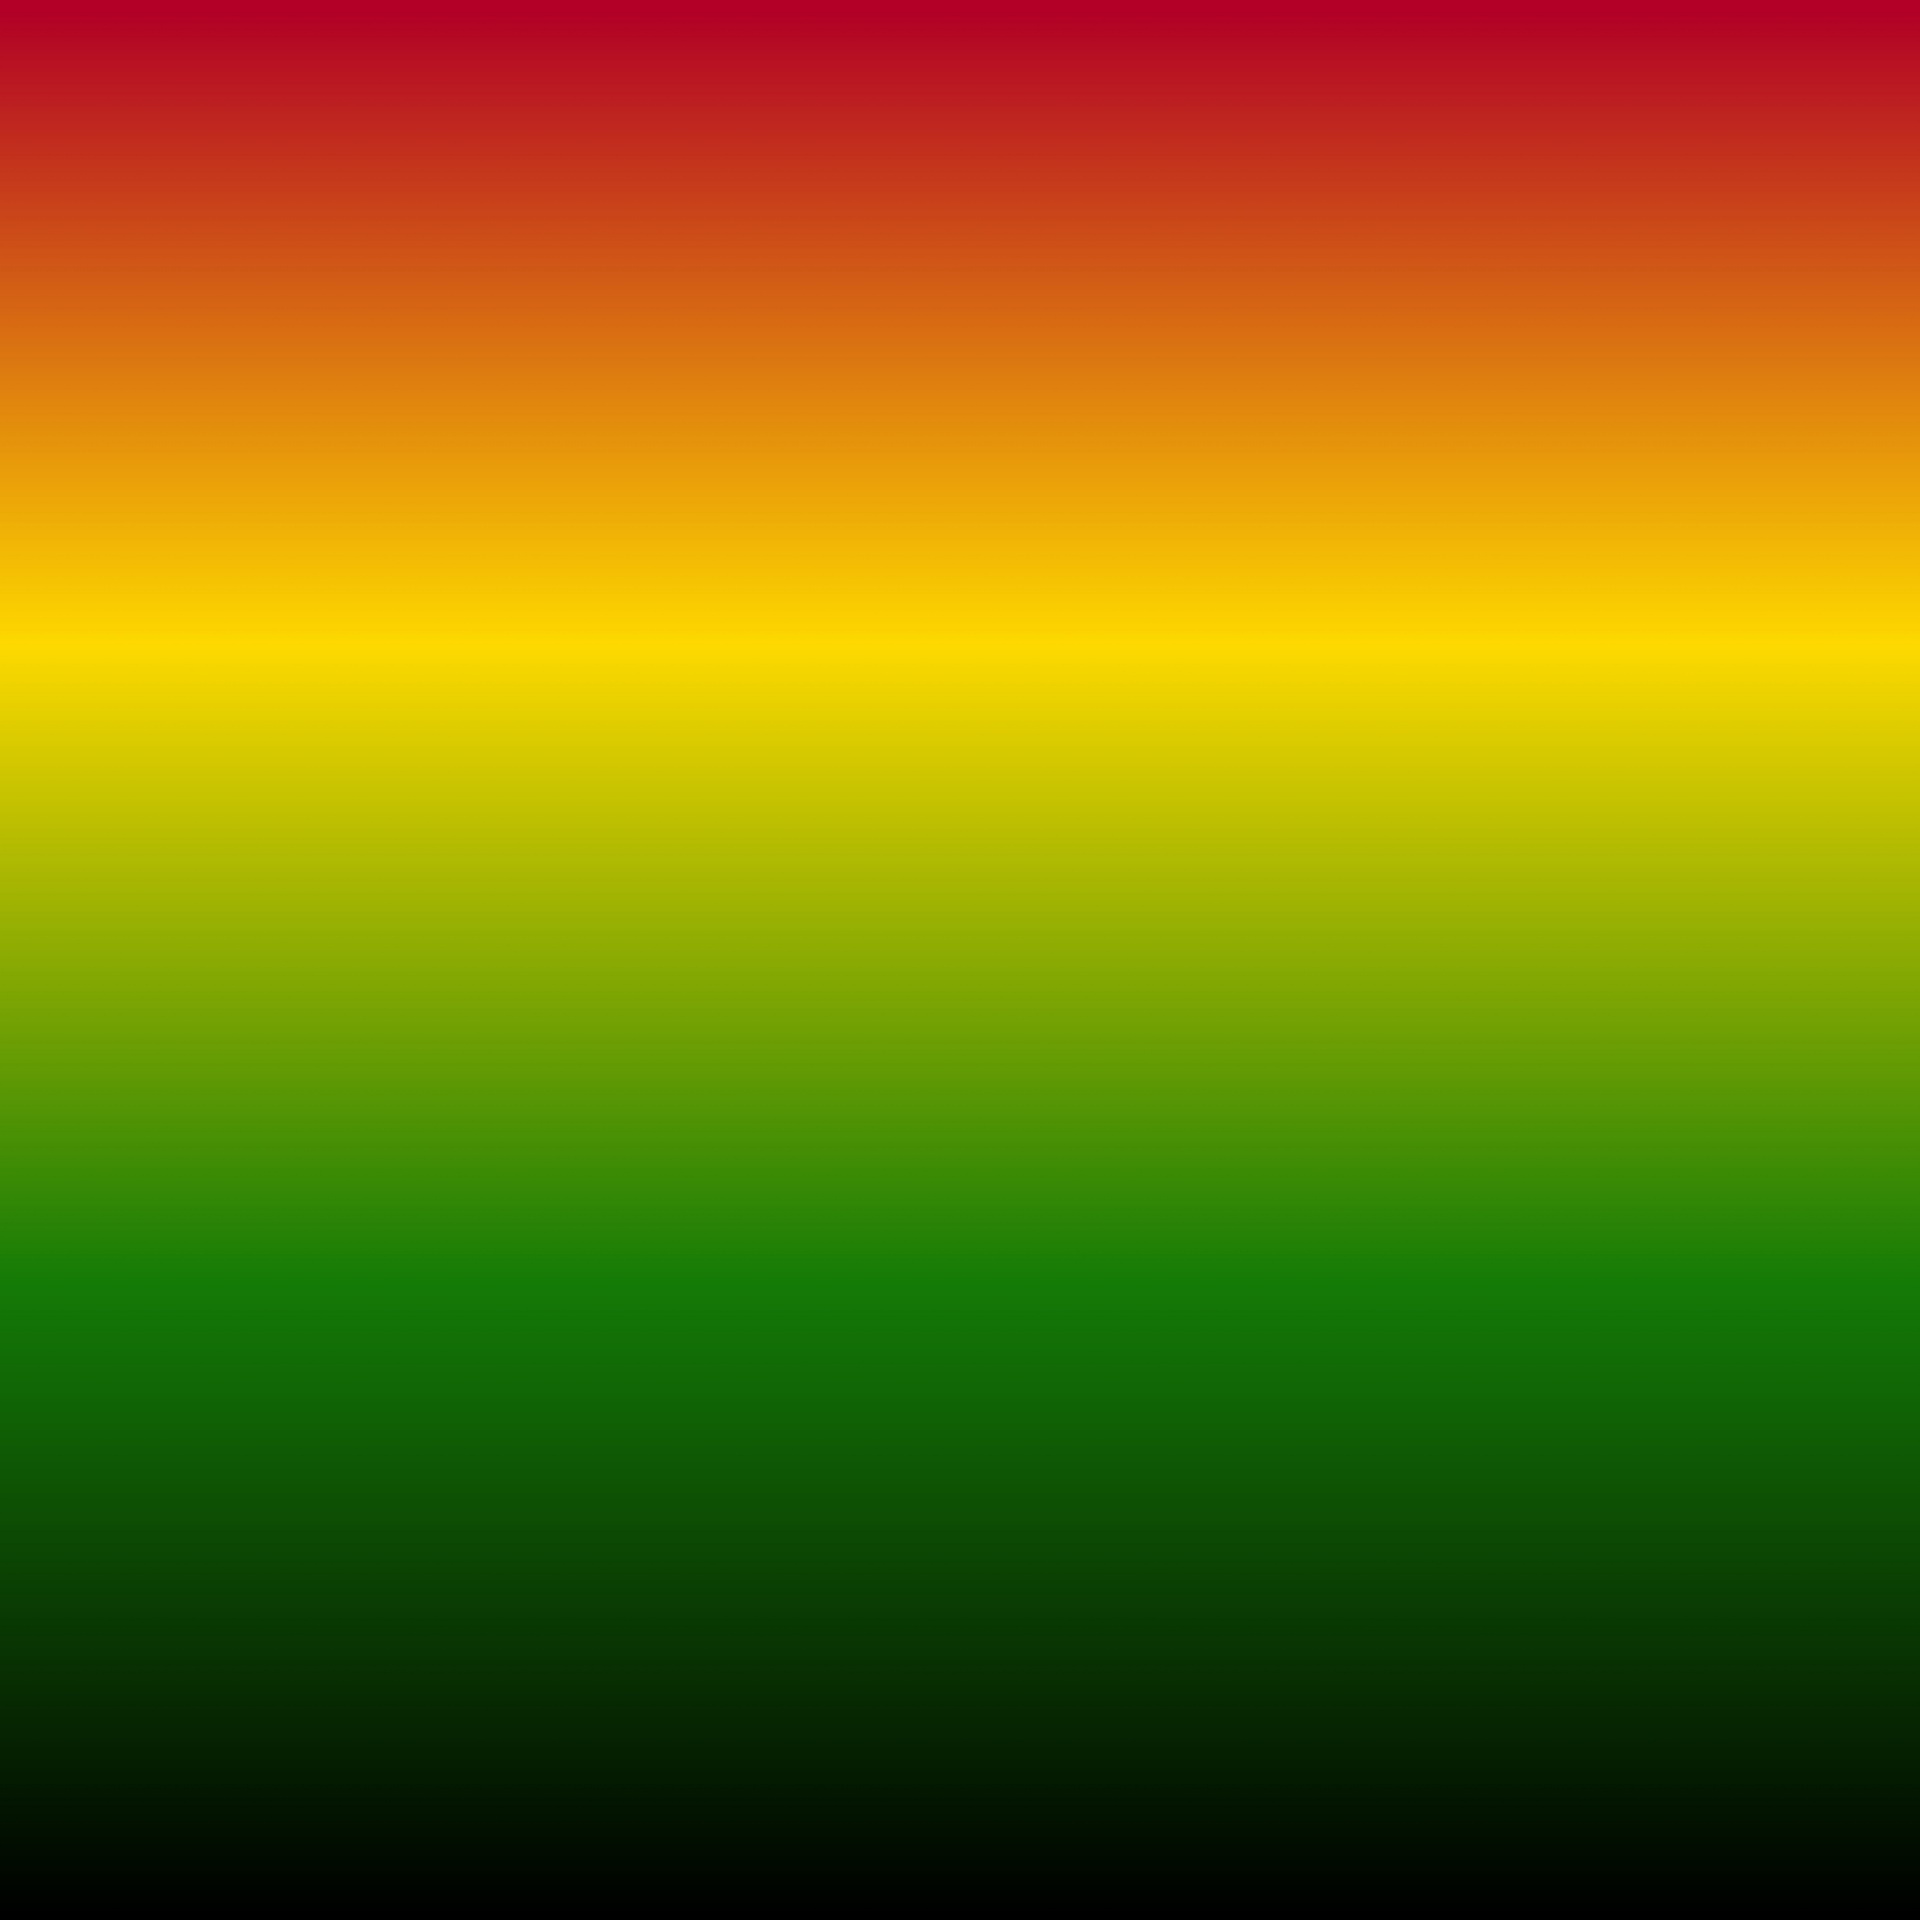 Wallpaper,background,red,yellow,green - free image from ... Red Black And Green Backgrounds